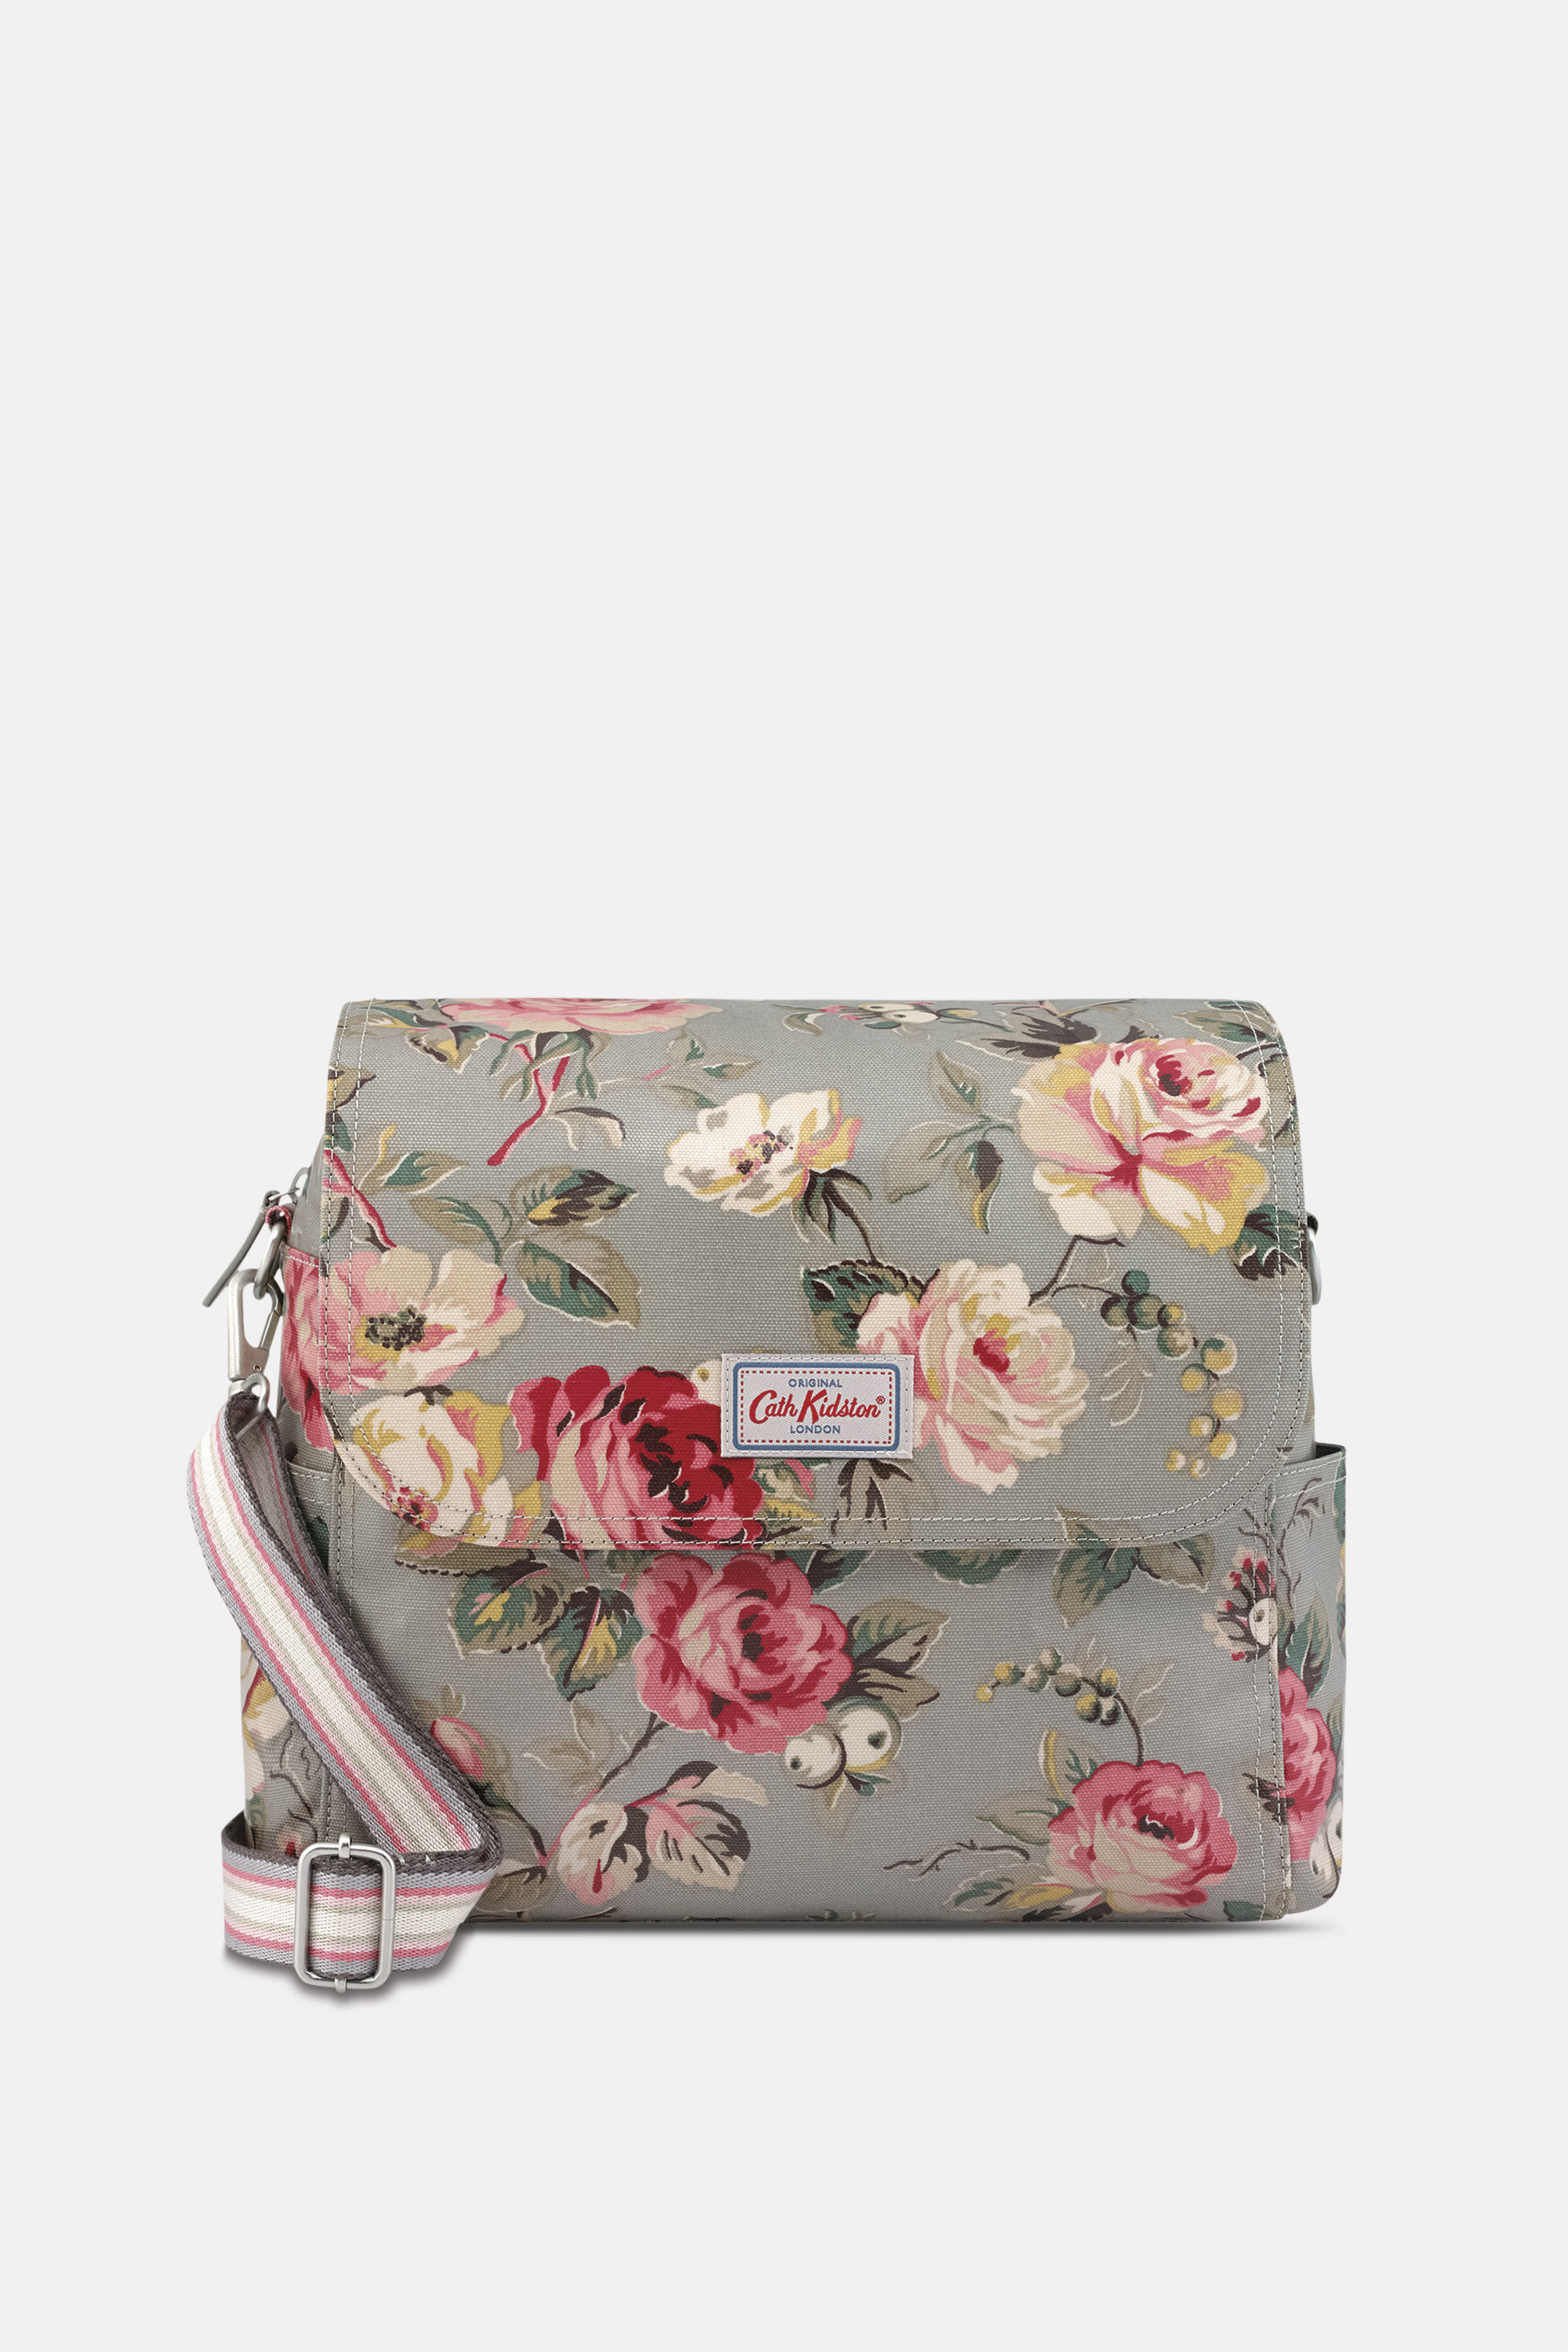 Cath Kidston Garden Rose Messenger Nappy Bag in Grey, 100% Shiny Coated Cotton Canvas